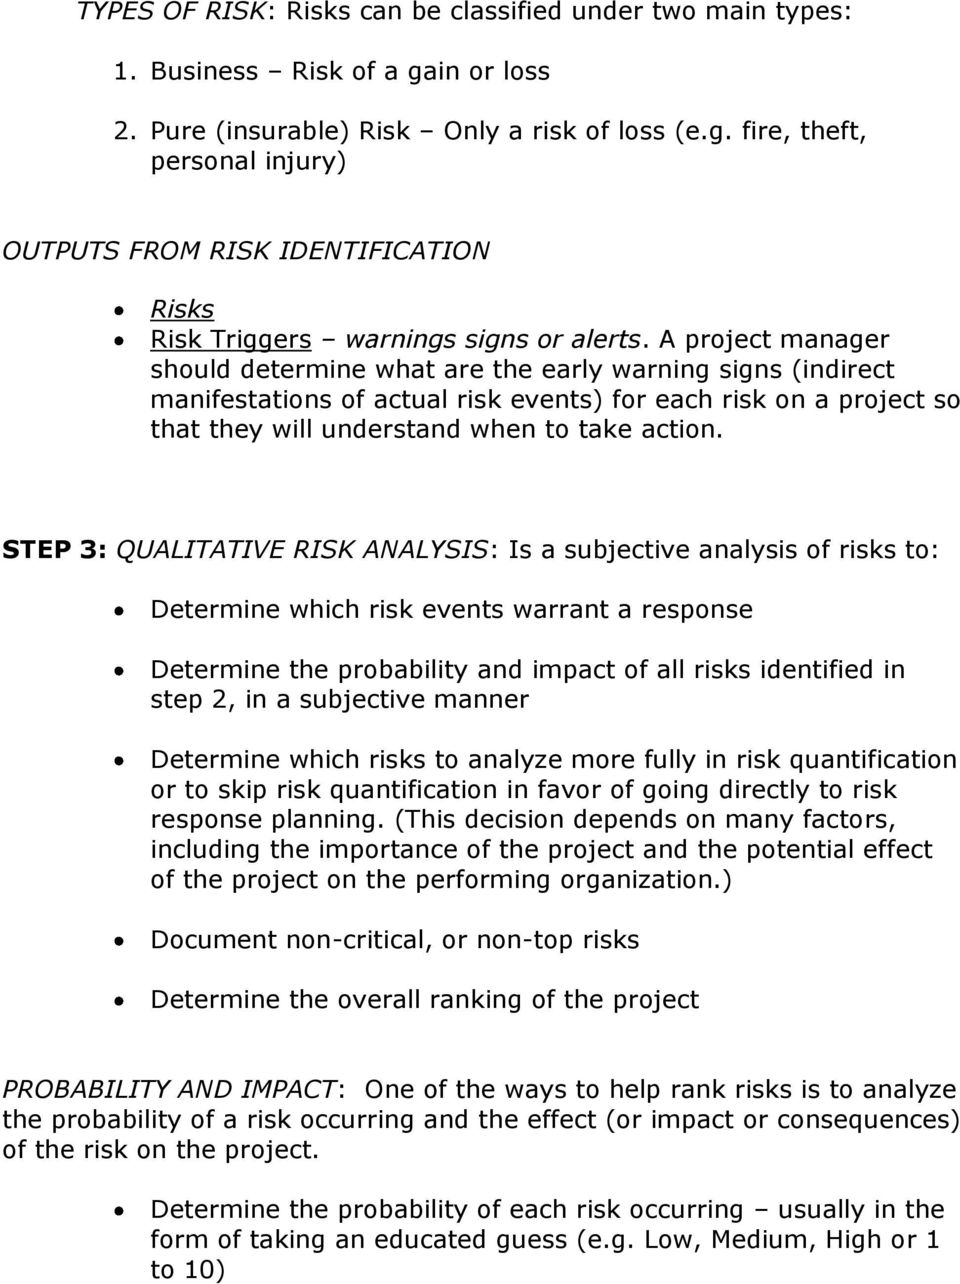 STEP 3: QUALITATIVE RISK ANALYSIS: Is a subjective analysis of risks to: Determine which risk events warrant a response Determine the probability and impact of all risks identified in step 2, in a